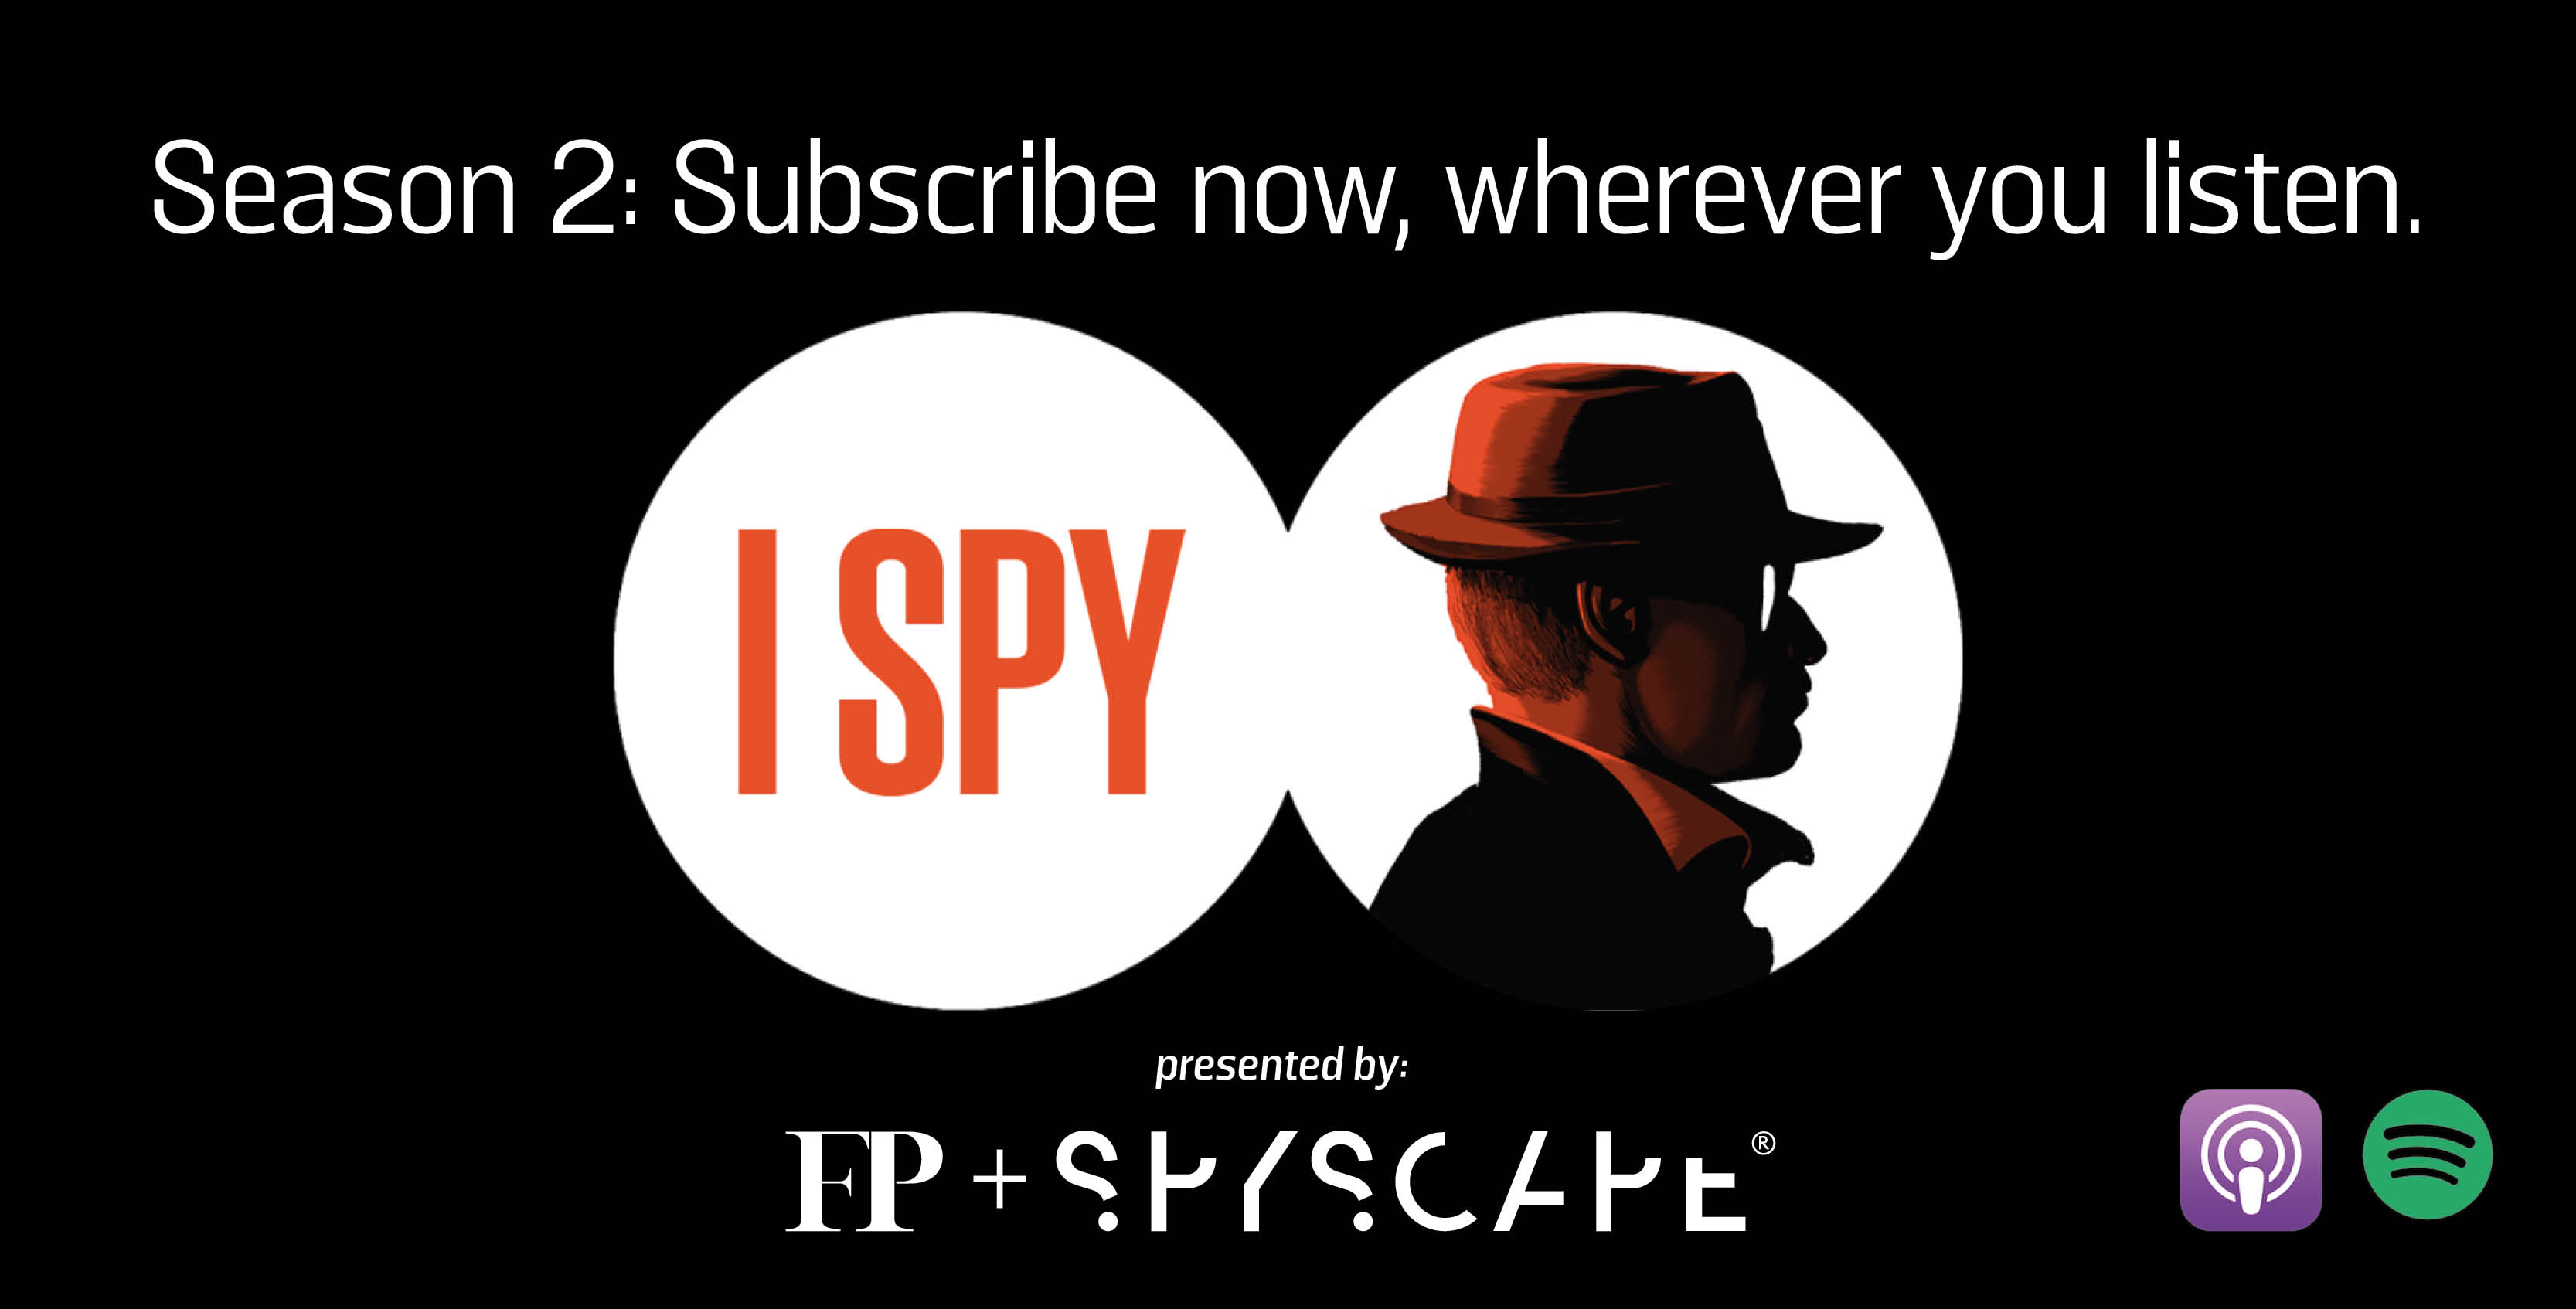 I Spy - An FP Podcast